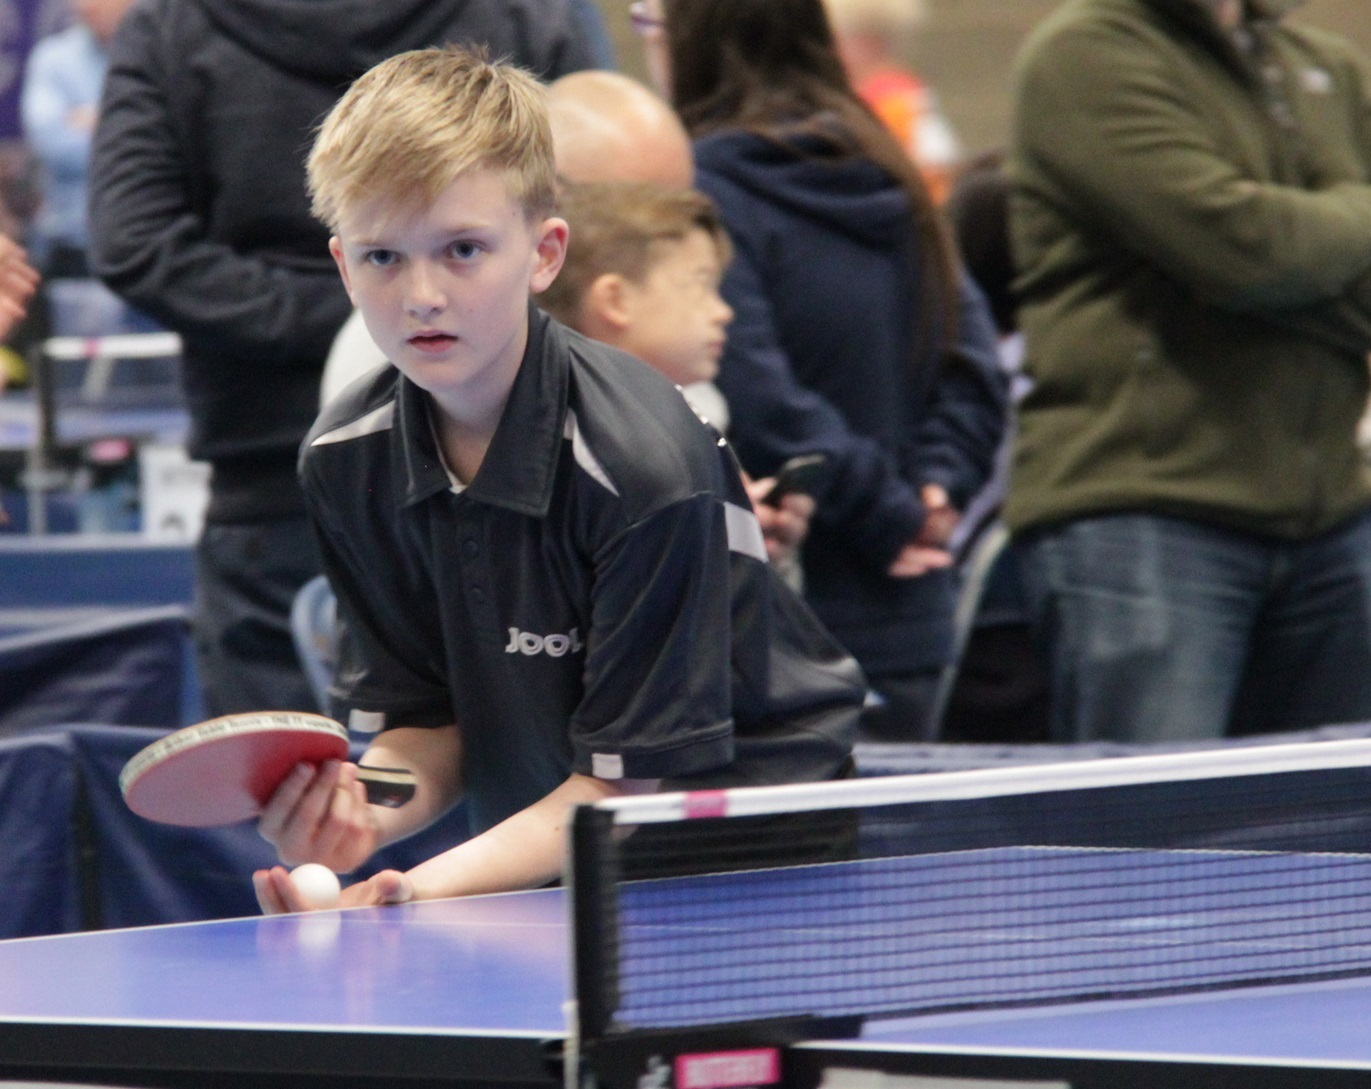 Alex Setchell in action in the U11 competition. Picture: Sam Setchell